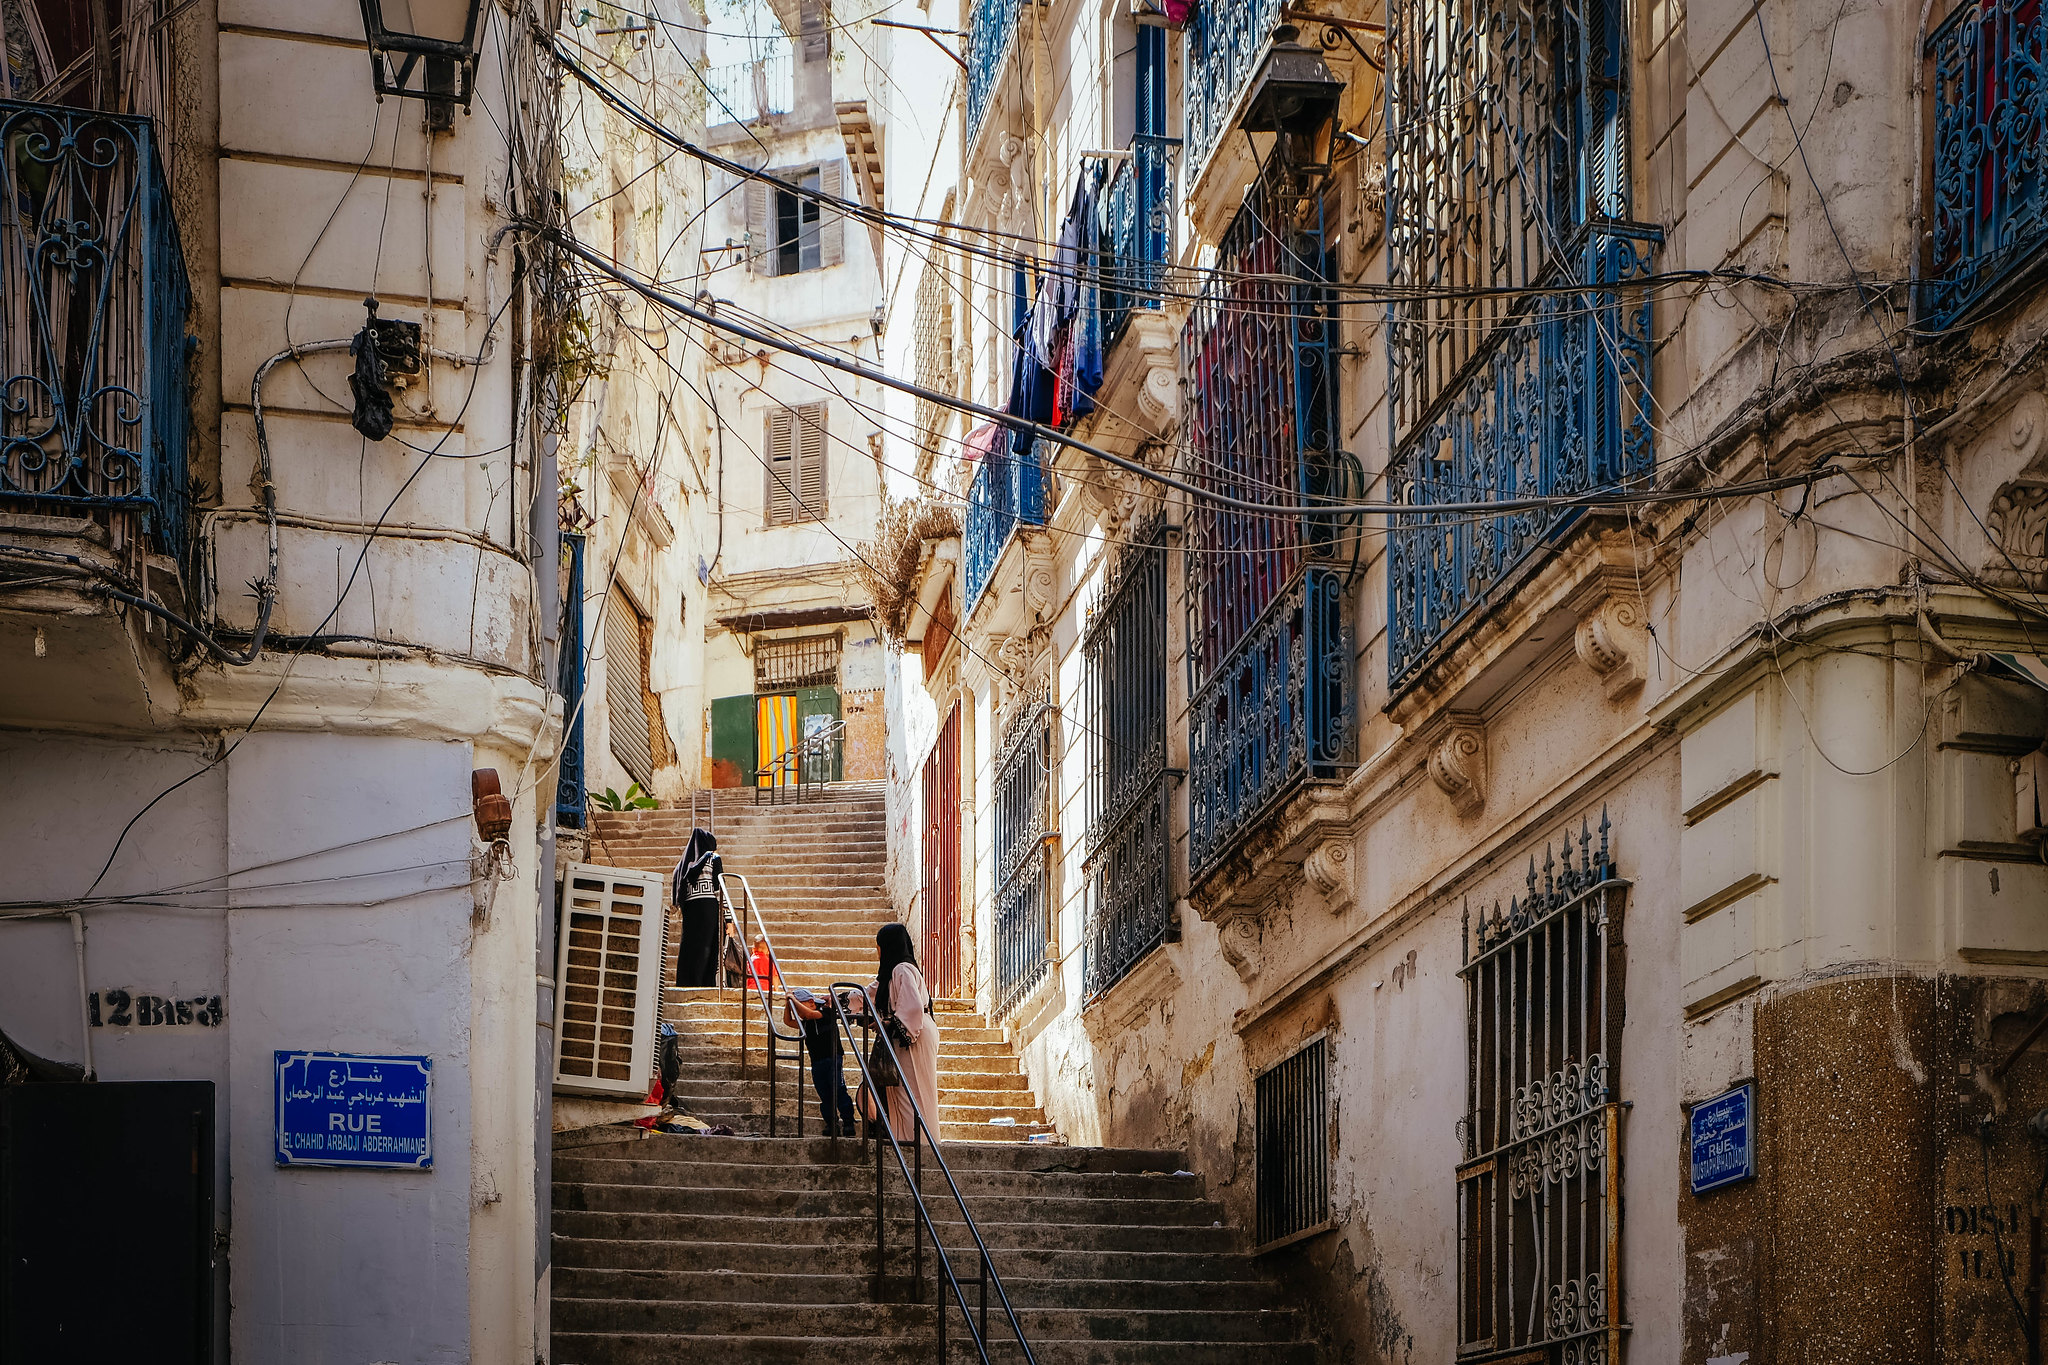 Streets of the Casbah, Algiers